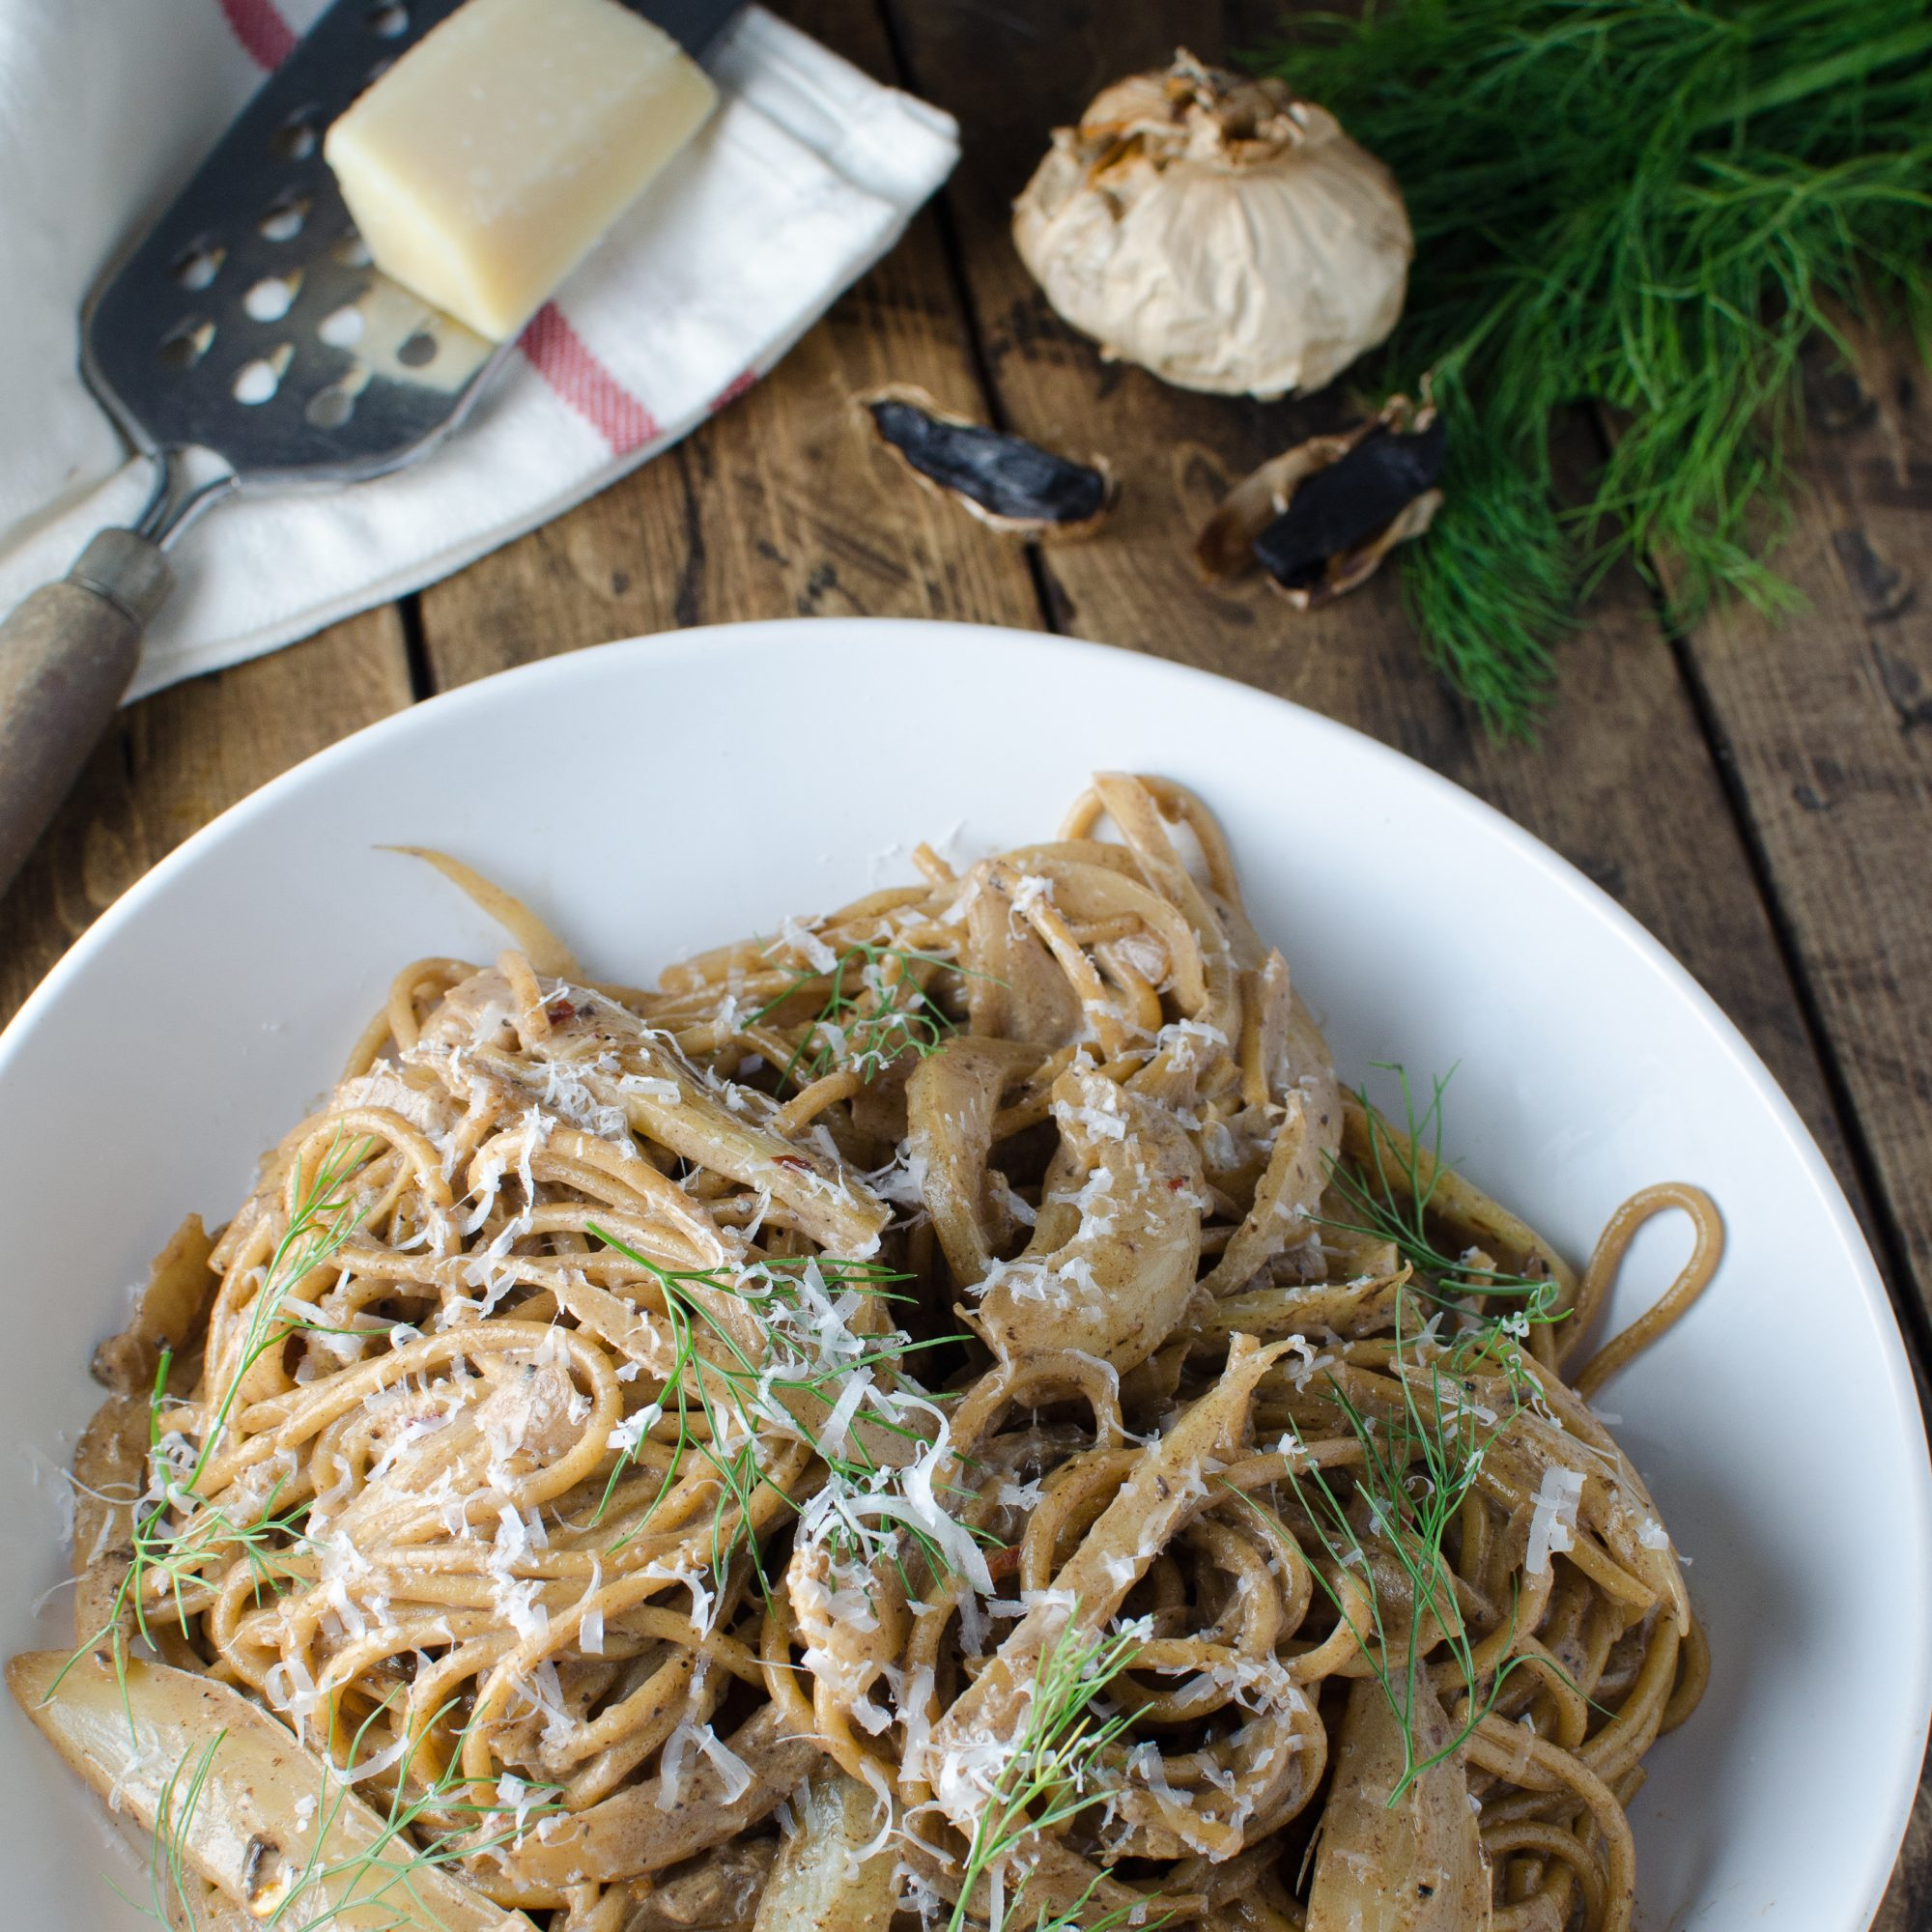 hd-201404-r-creamy-fennel-and-black-garlic-whole-wheat-pasta.jpg